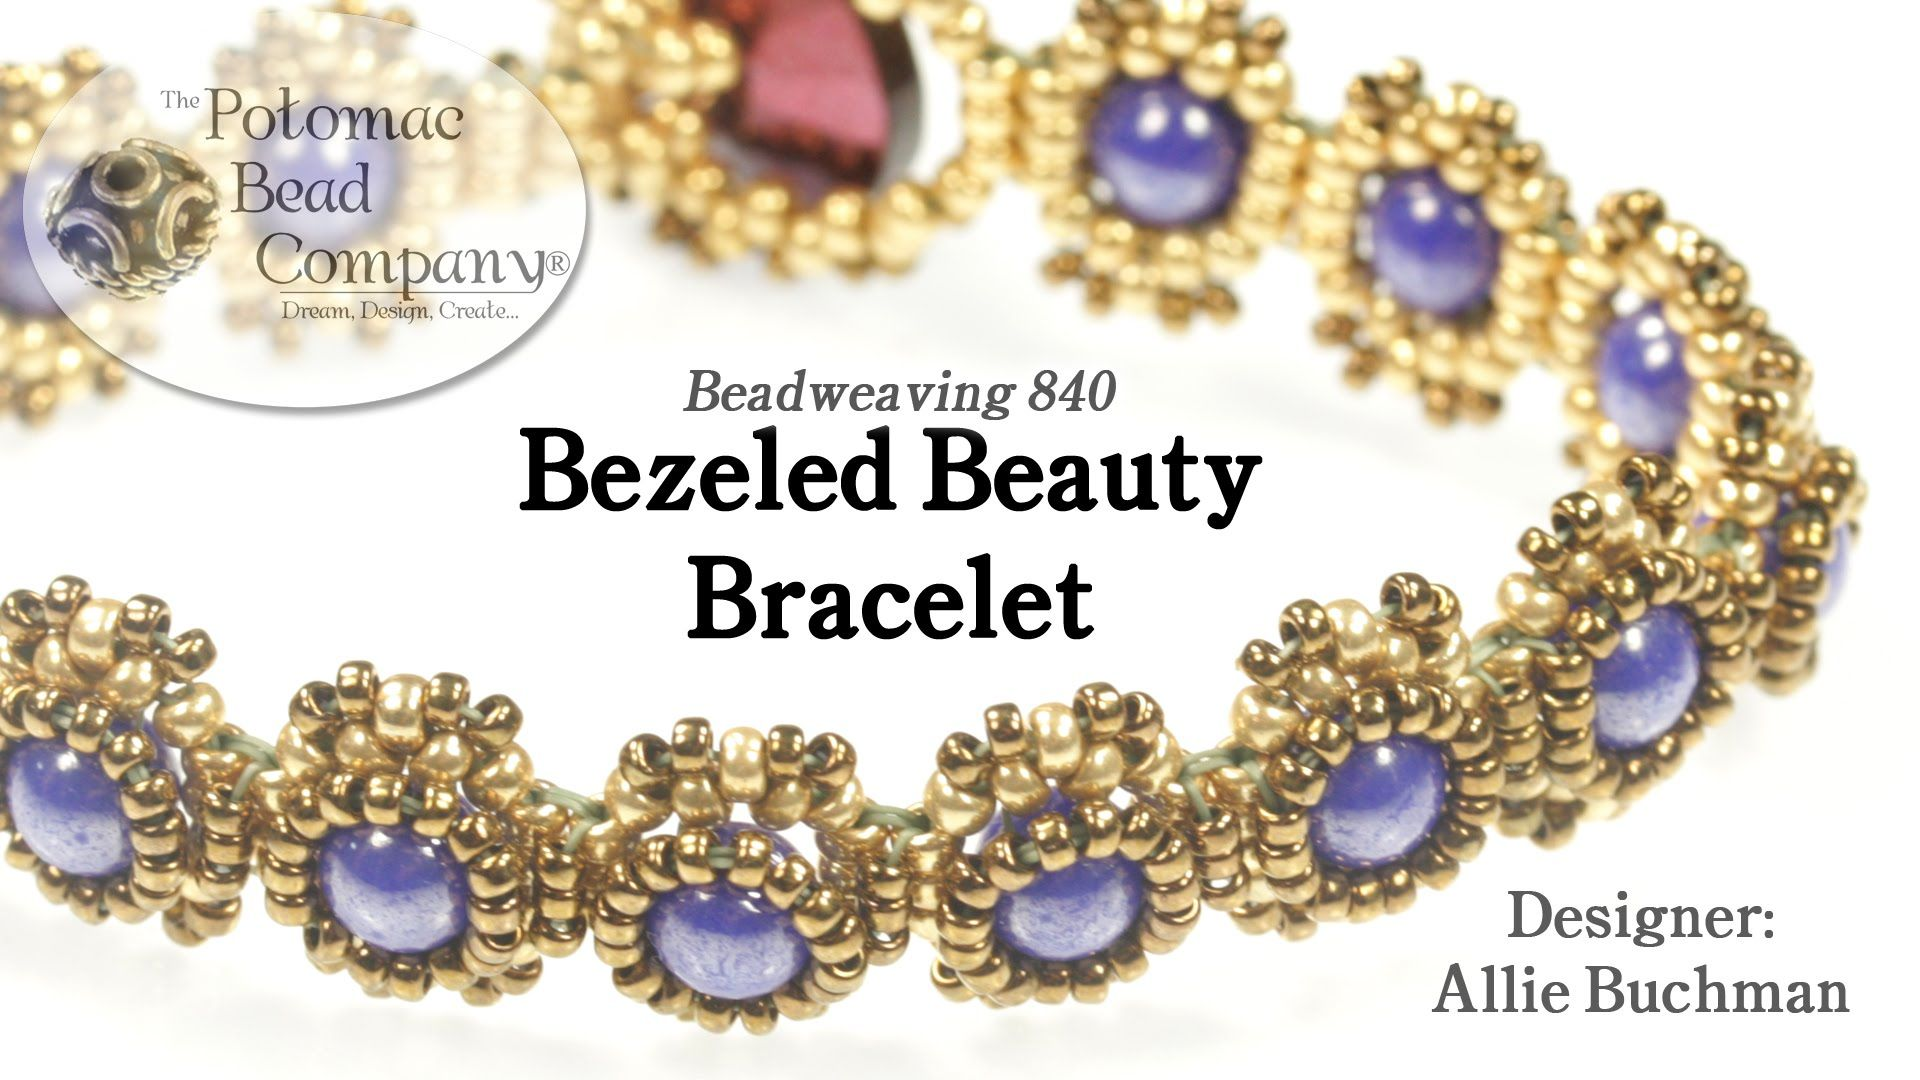 Bezeled beauty